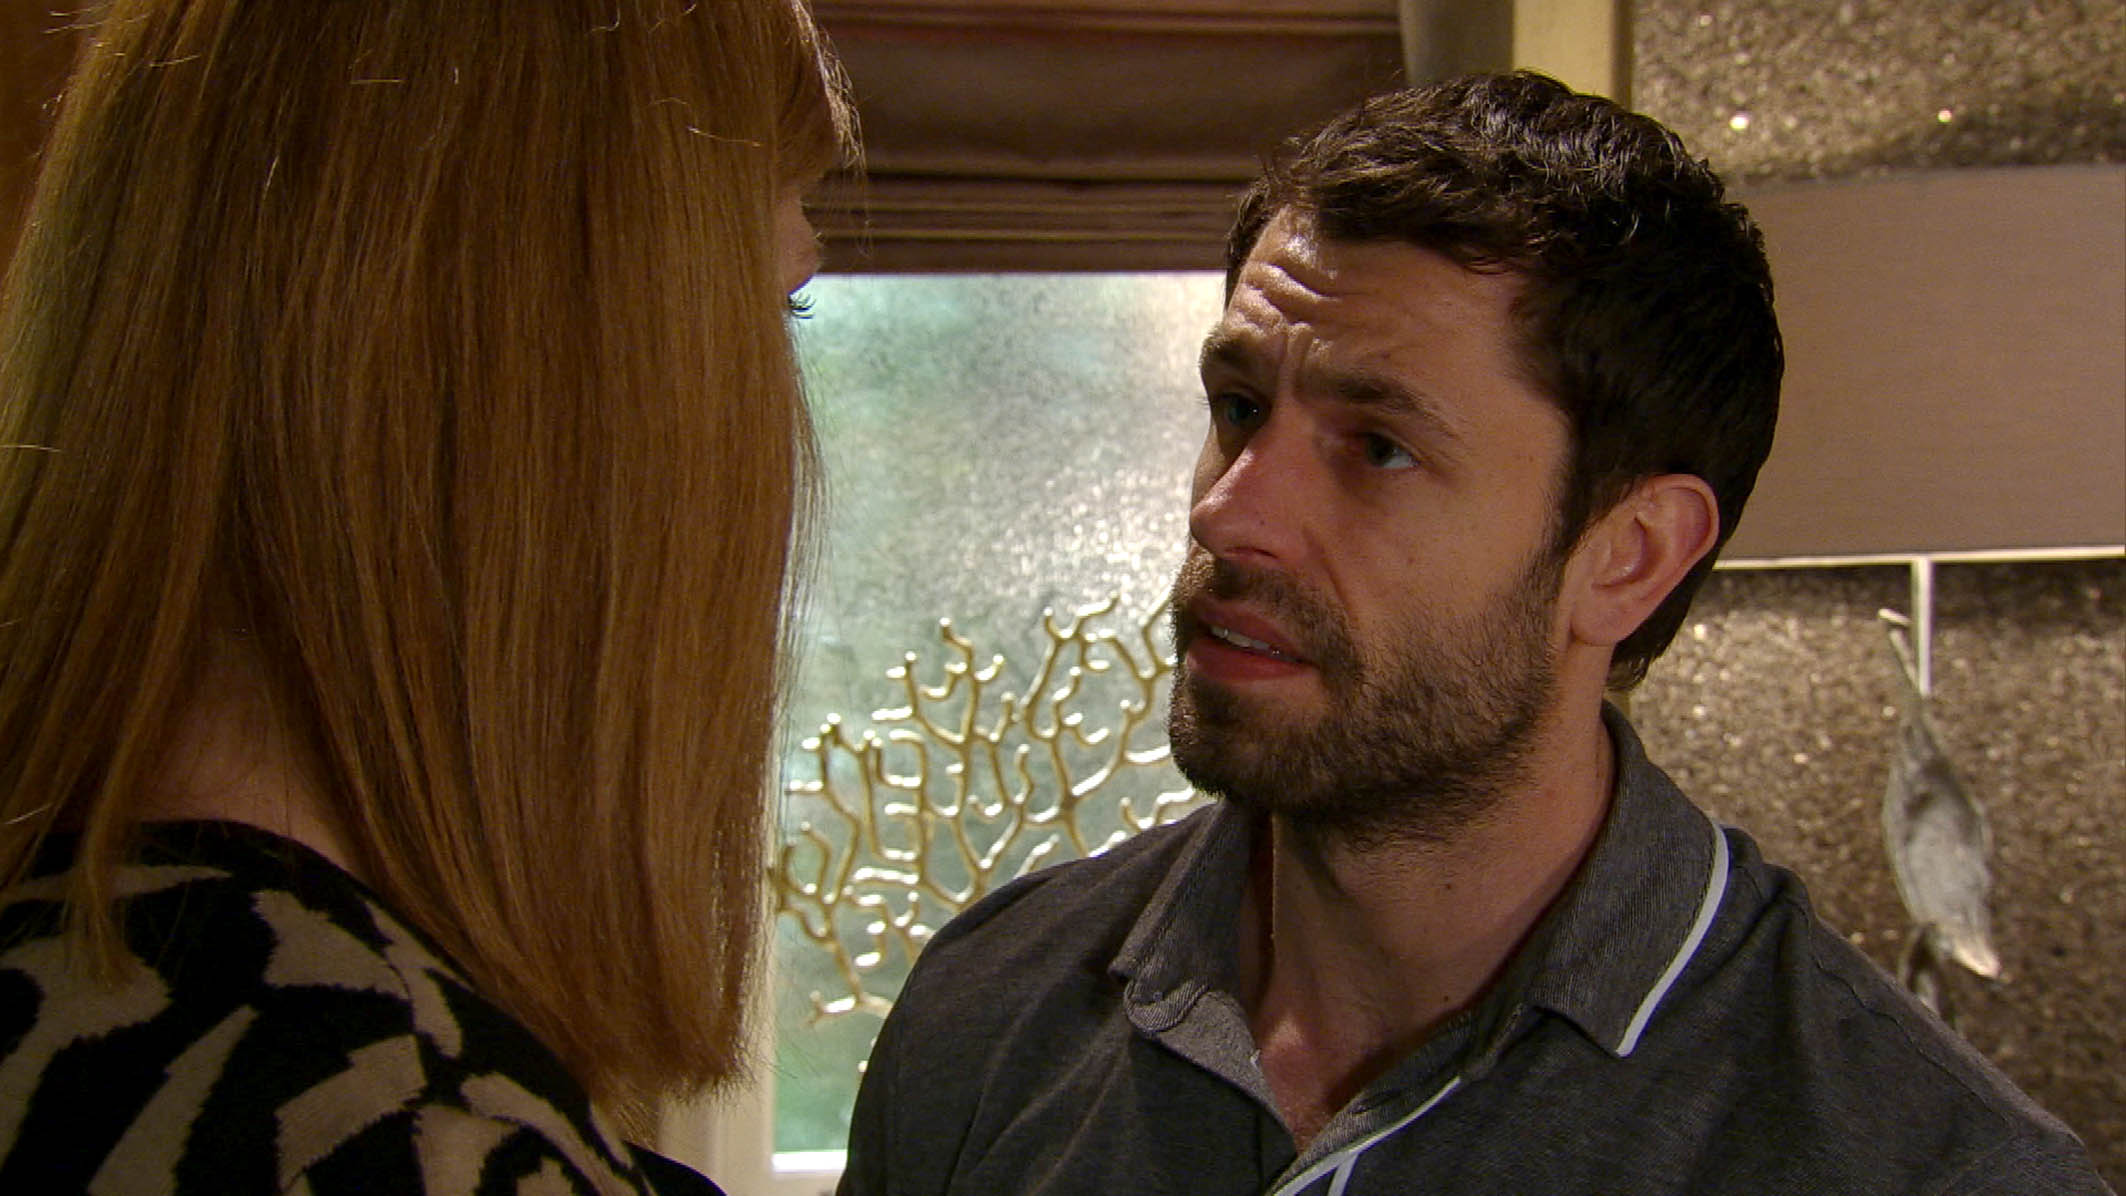 FROM ITV STRICT EMBARGO - No Use Before Tuesday 7 June 2016 Emmerdale - Ep 7527 Monday 13 June 2016 Bernice White [SAMANTHA GILES] tells Andy Sugden [KELVIN FLETCHER] about Lawrence being gay and how he had a relationship with Ronnie. She leans in for a kiss but will Andy return it? Picture contact: david.crook@itv.com on 0161 952 6214 This photograph is (C) ITV Plc and can only be reproduced for editorial purposes directly in connection with the programme or event mentioned above, or ITV plc. Once made available by ITV plc Picture Desk, this photograph can be reproduced once only up until the transmission [TX] date and no reproduction fee will be charged. Any subsequent usage may incur a fee. This photograph must not be manipulated [excluding basic cropping] in a manner which alters the visual appearance of the person photographed deemed detrimental or inappropriate by ITV plc Picture Desk. This photograph must not be syndicated to any other company, publication or website, or permanently archived, without the express written permission of ITV Plc Picture Desk. Full Terms and conditions are available on the website www.itvpictures.com